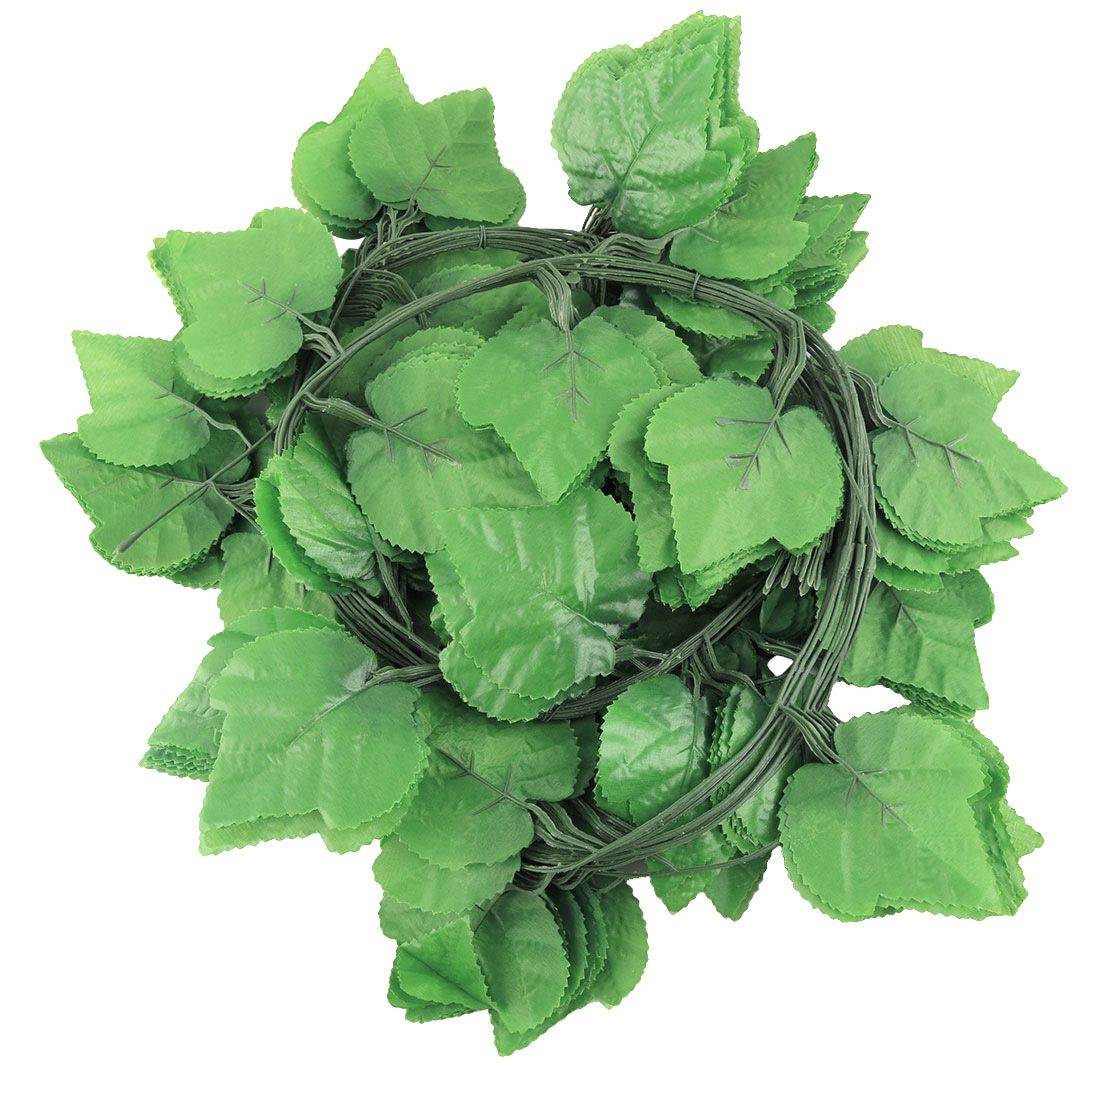 Plastic Artificial Grape Leaves Hanging Vine Green 10pcs for Home Party Decor